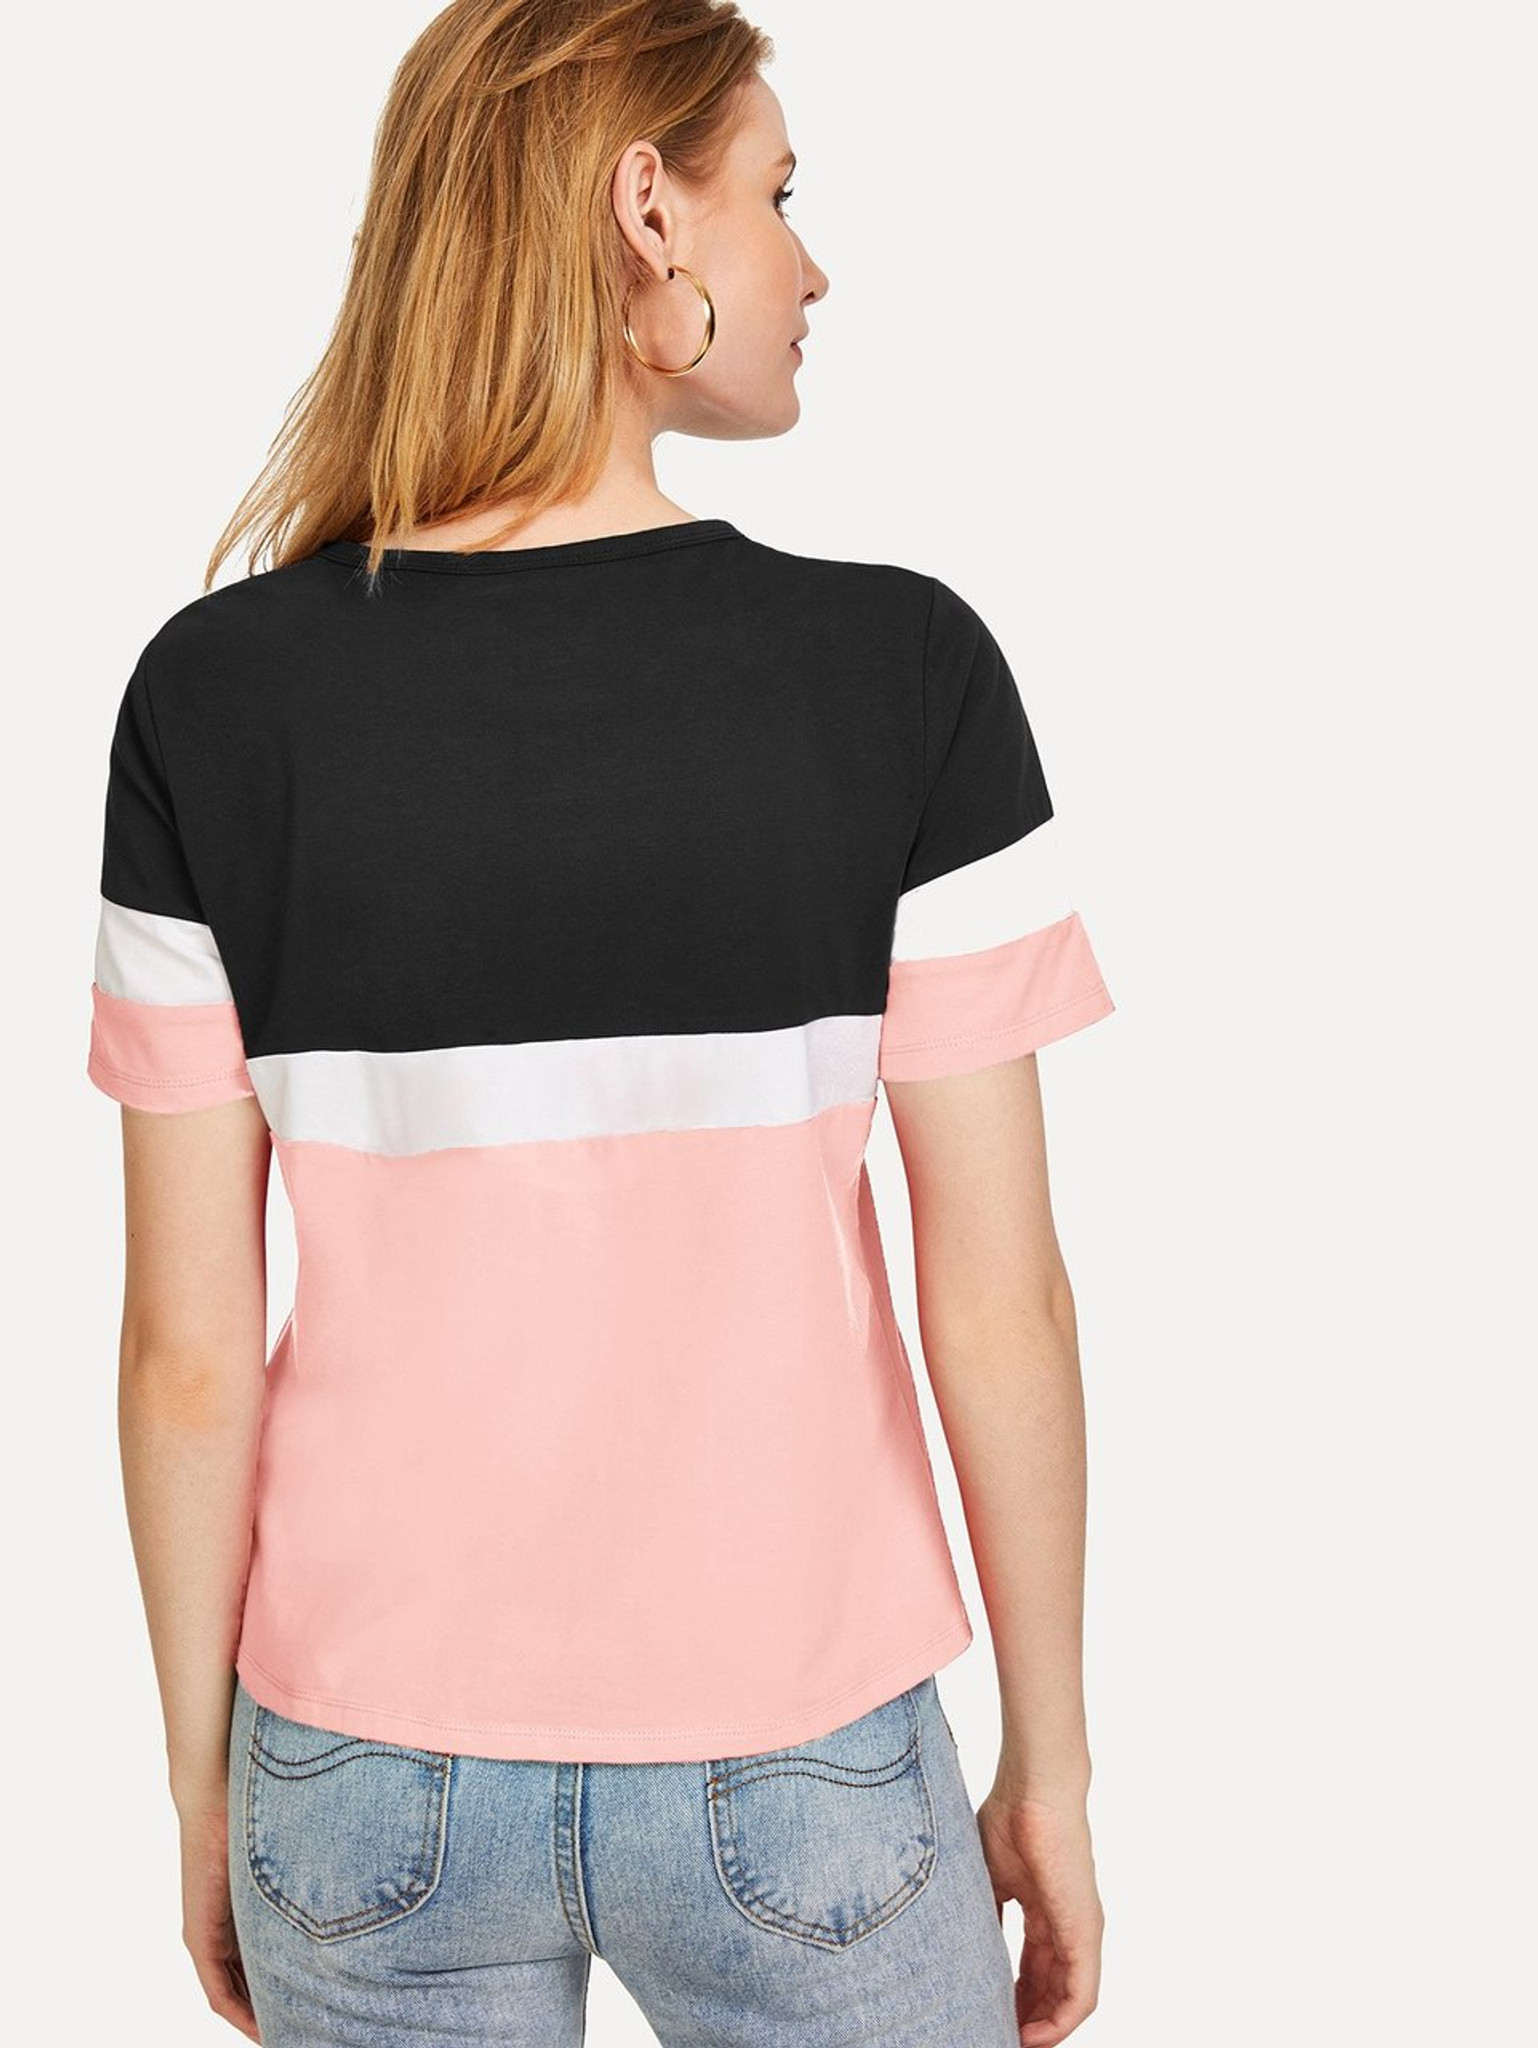 Fifth Avenue Womens JISK Color Block T-Shirt - Pink and Black